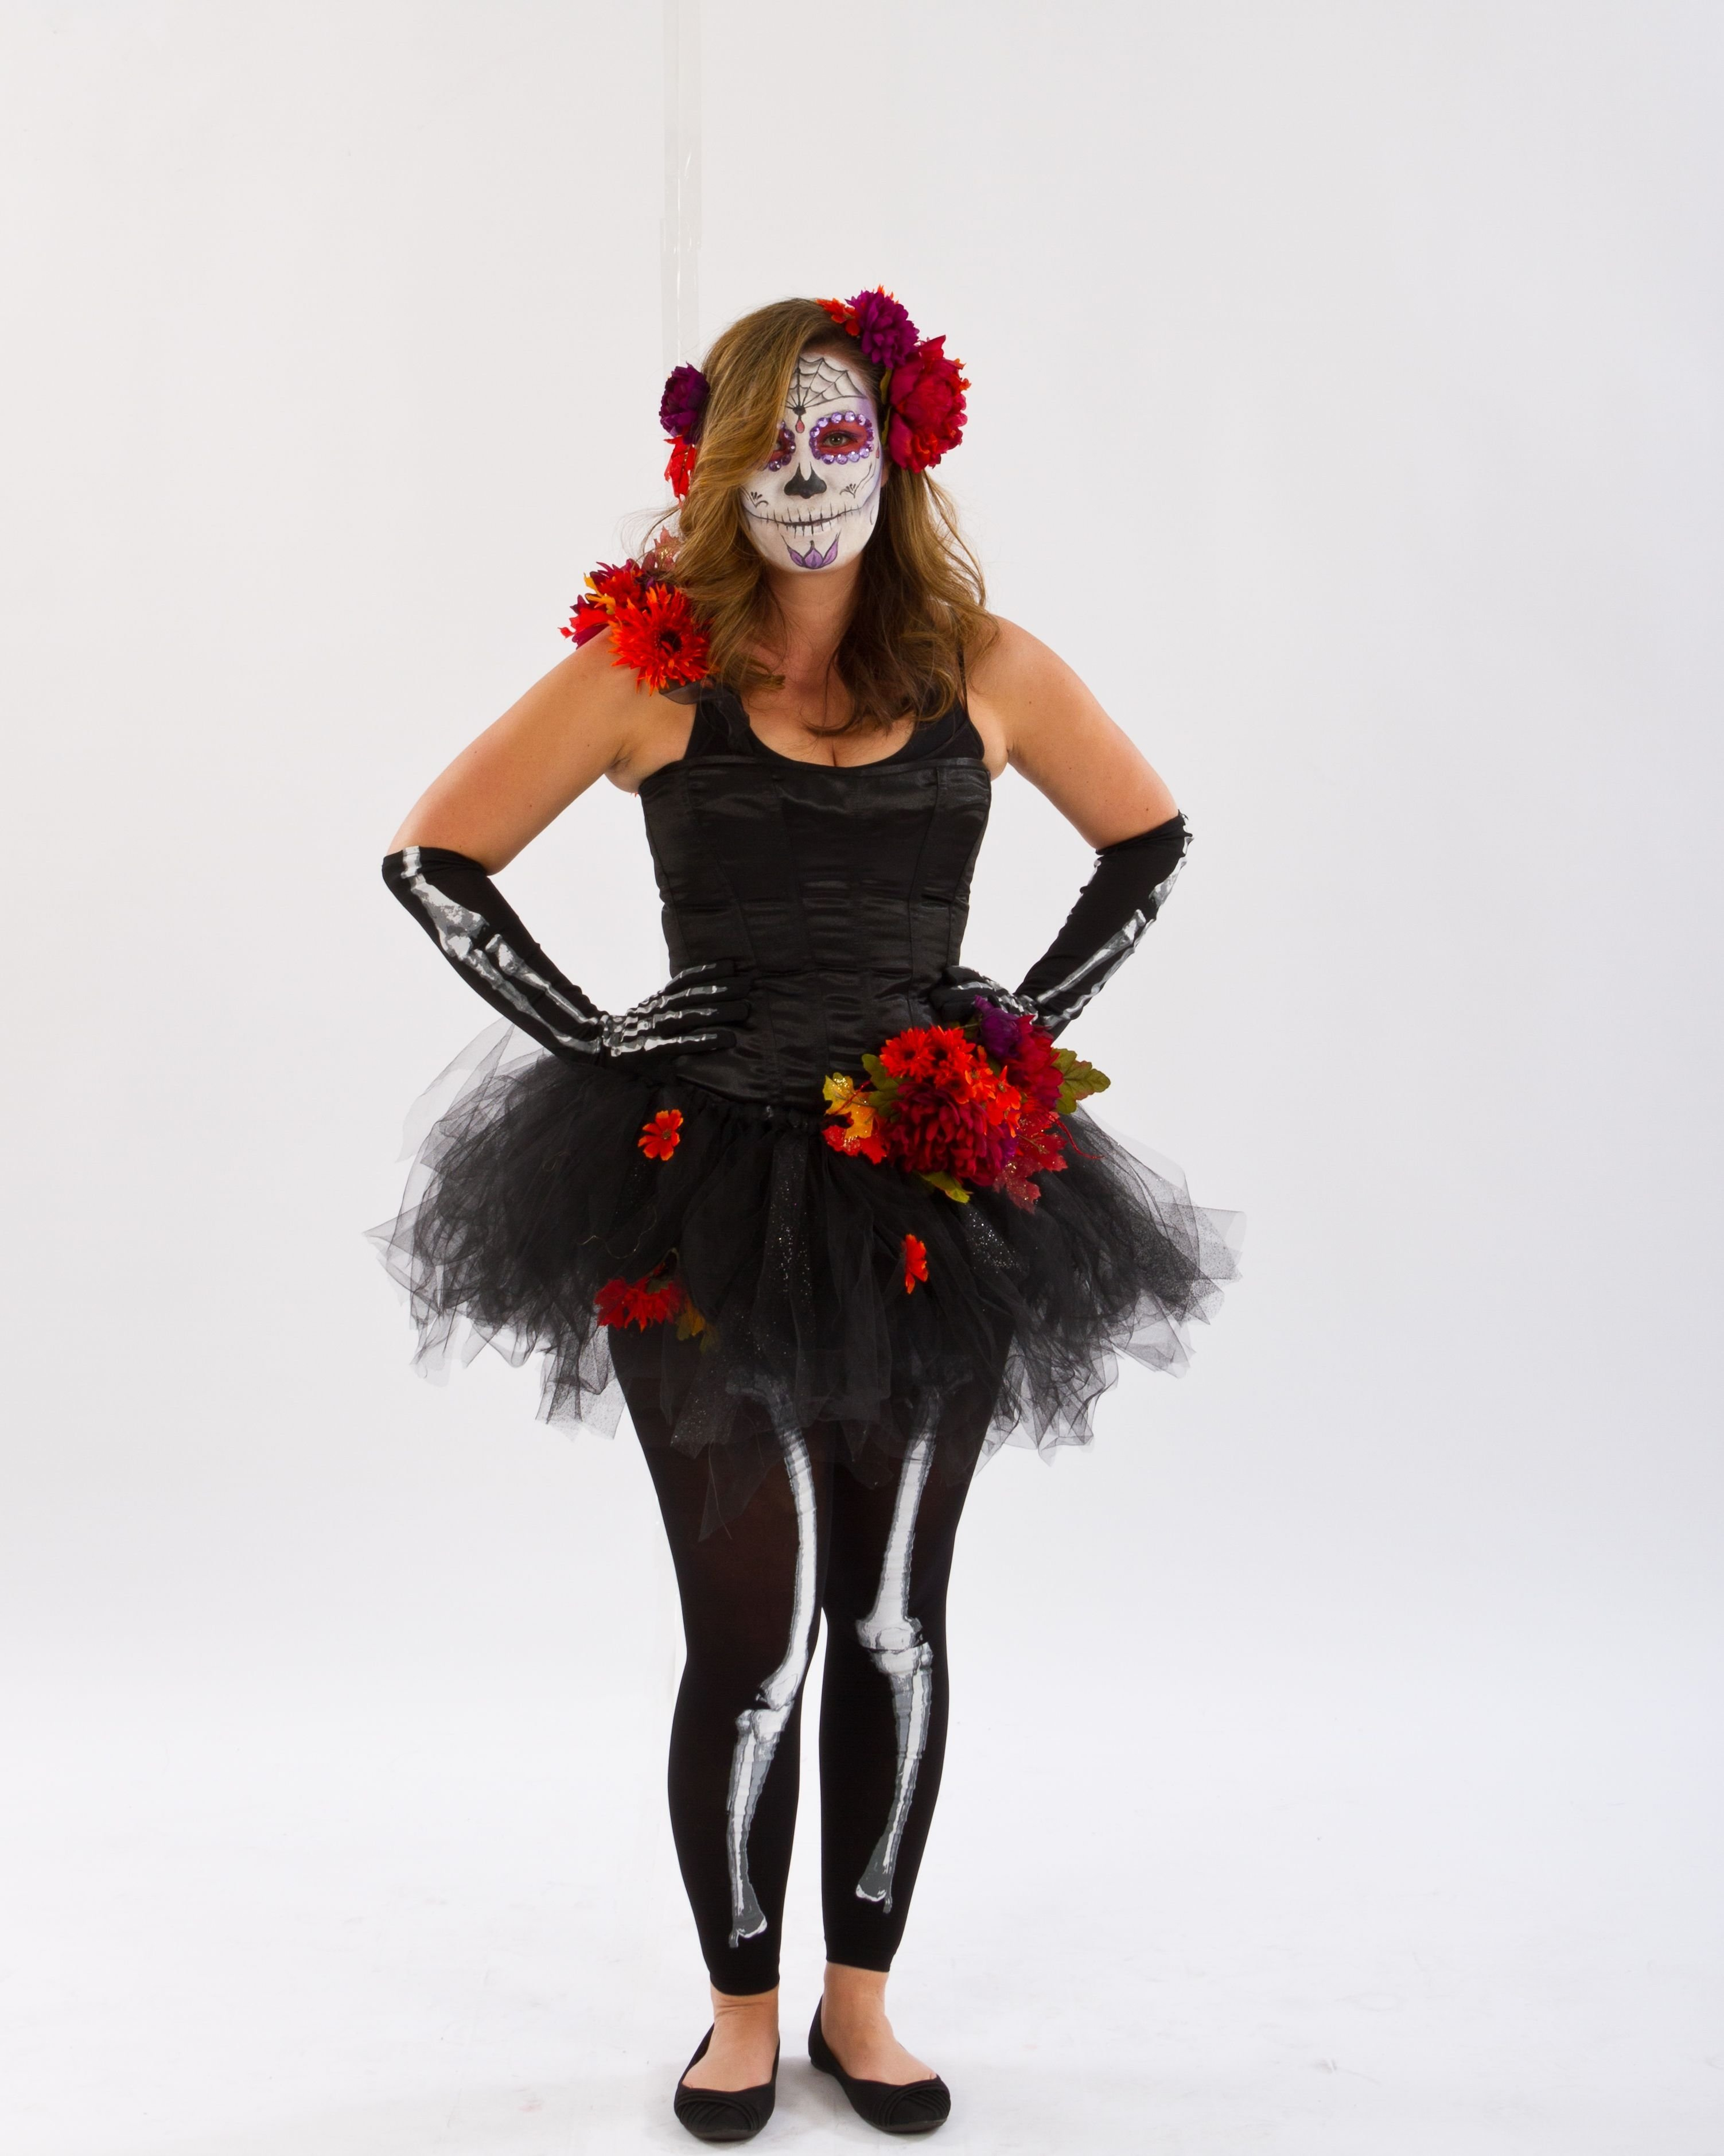 10 Best Dia De Los Muertos Costume Ideas to die for diy day of the dead costume starting with mix match 7 2020